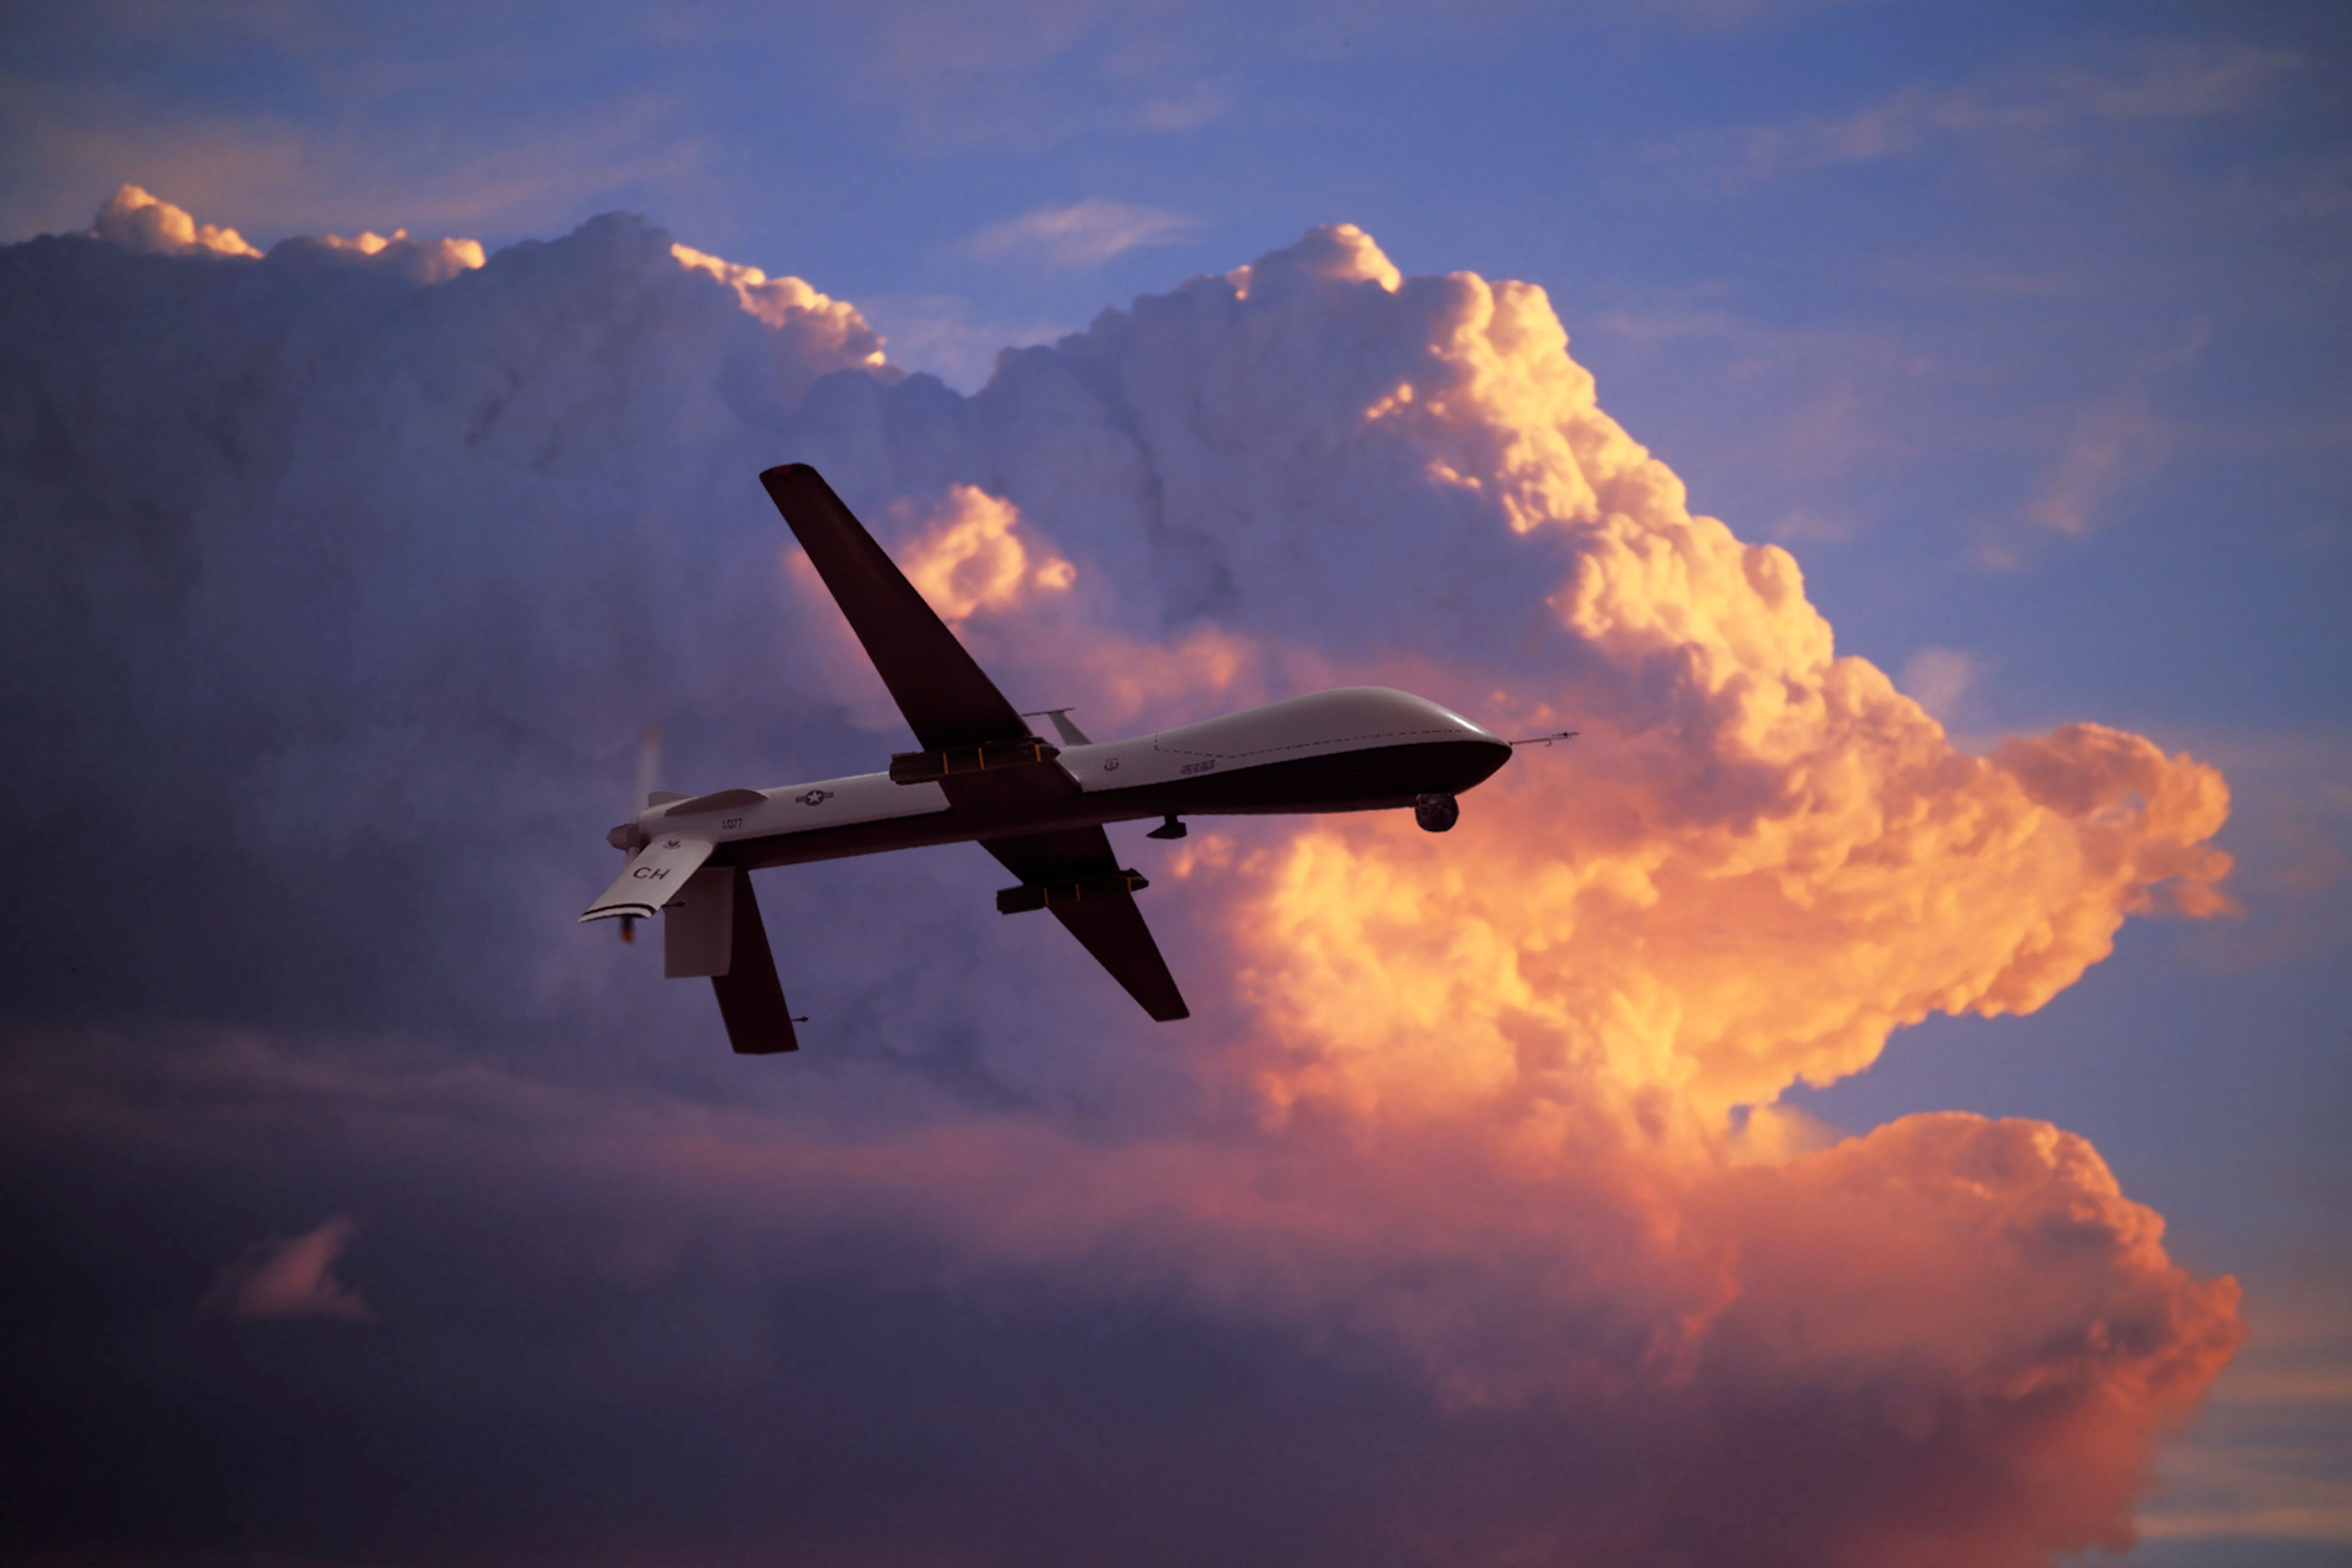 Unmanned MQ-1 Predator with Hellfire missiles at Sunset